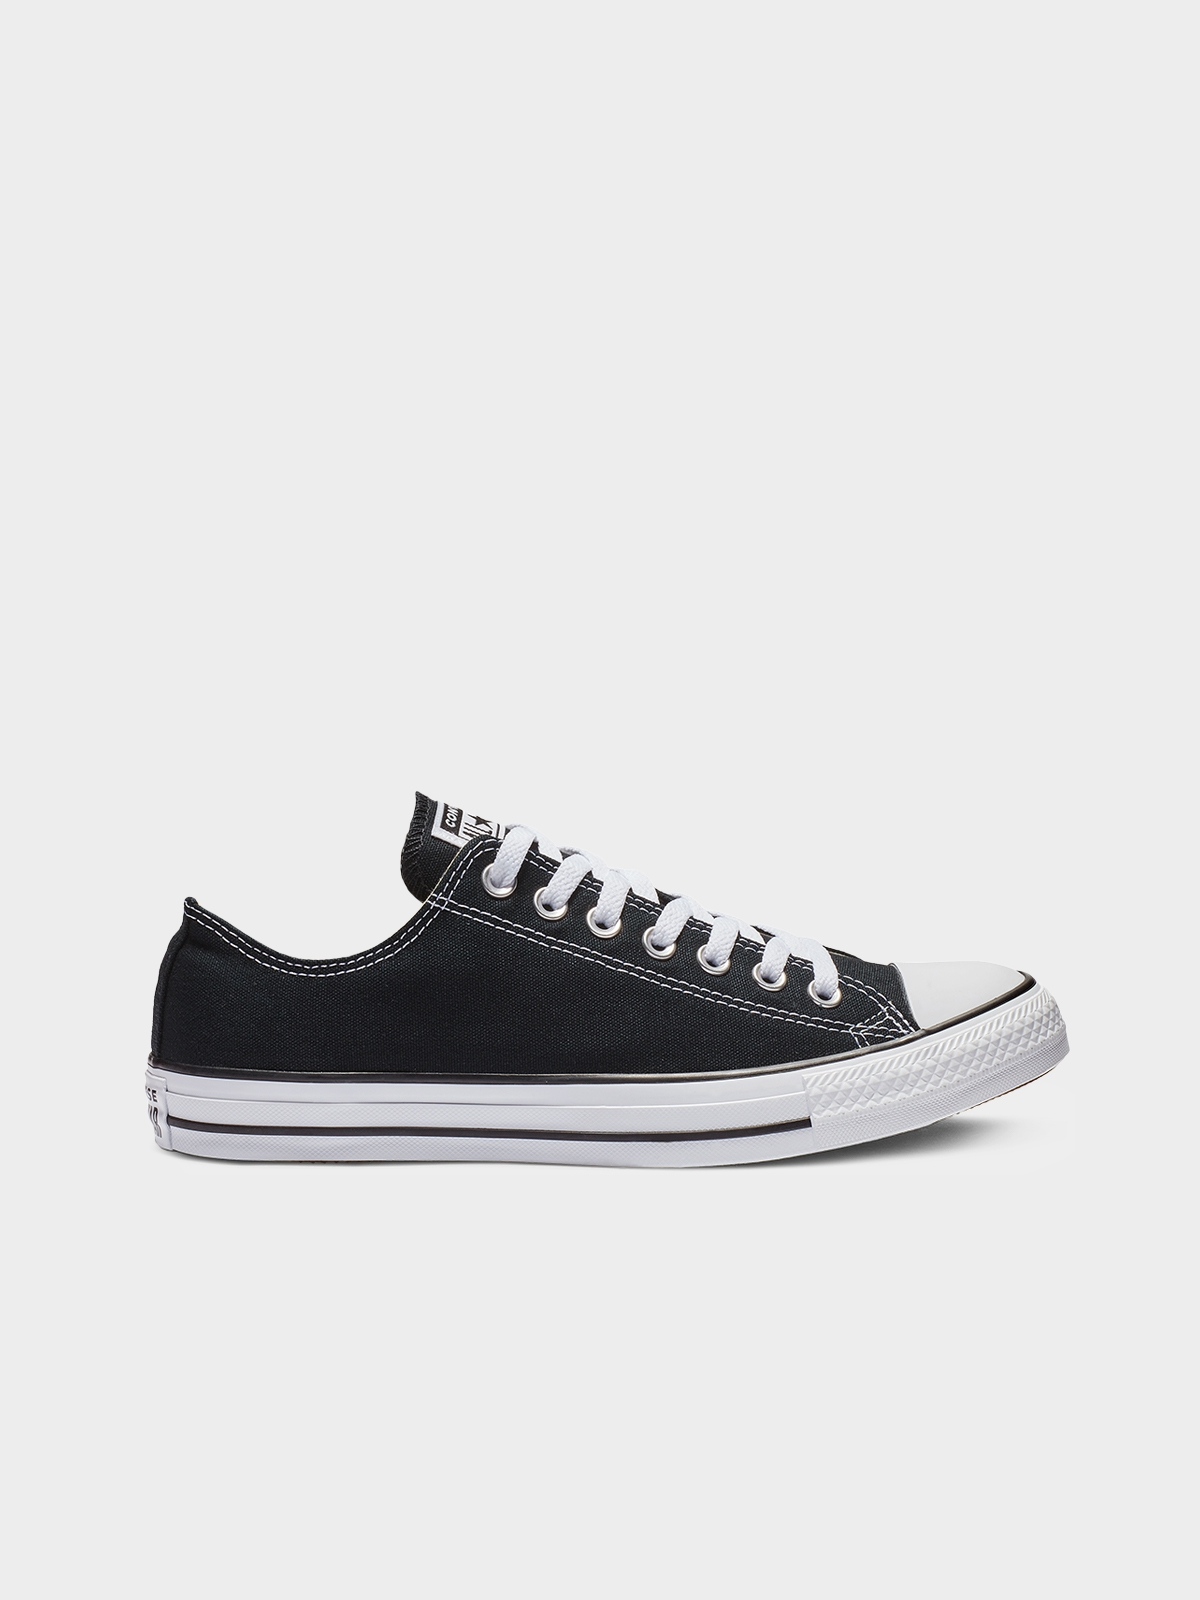 Converse All Star Ox Canvas Sneakers Black